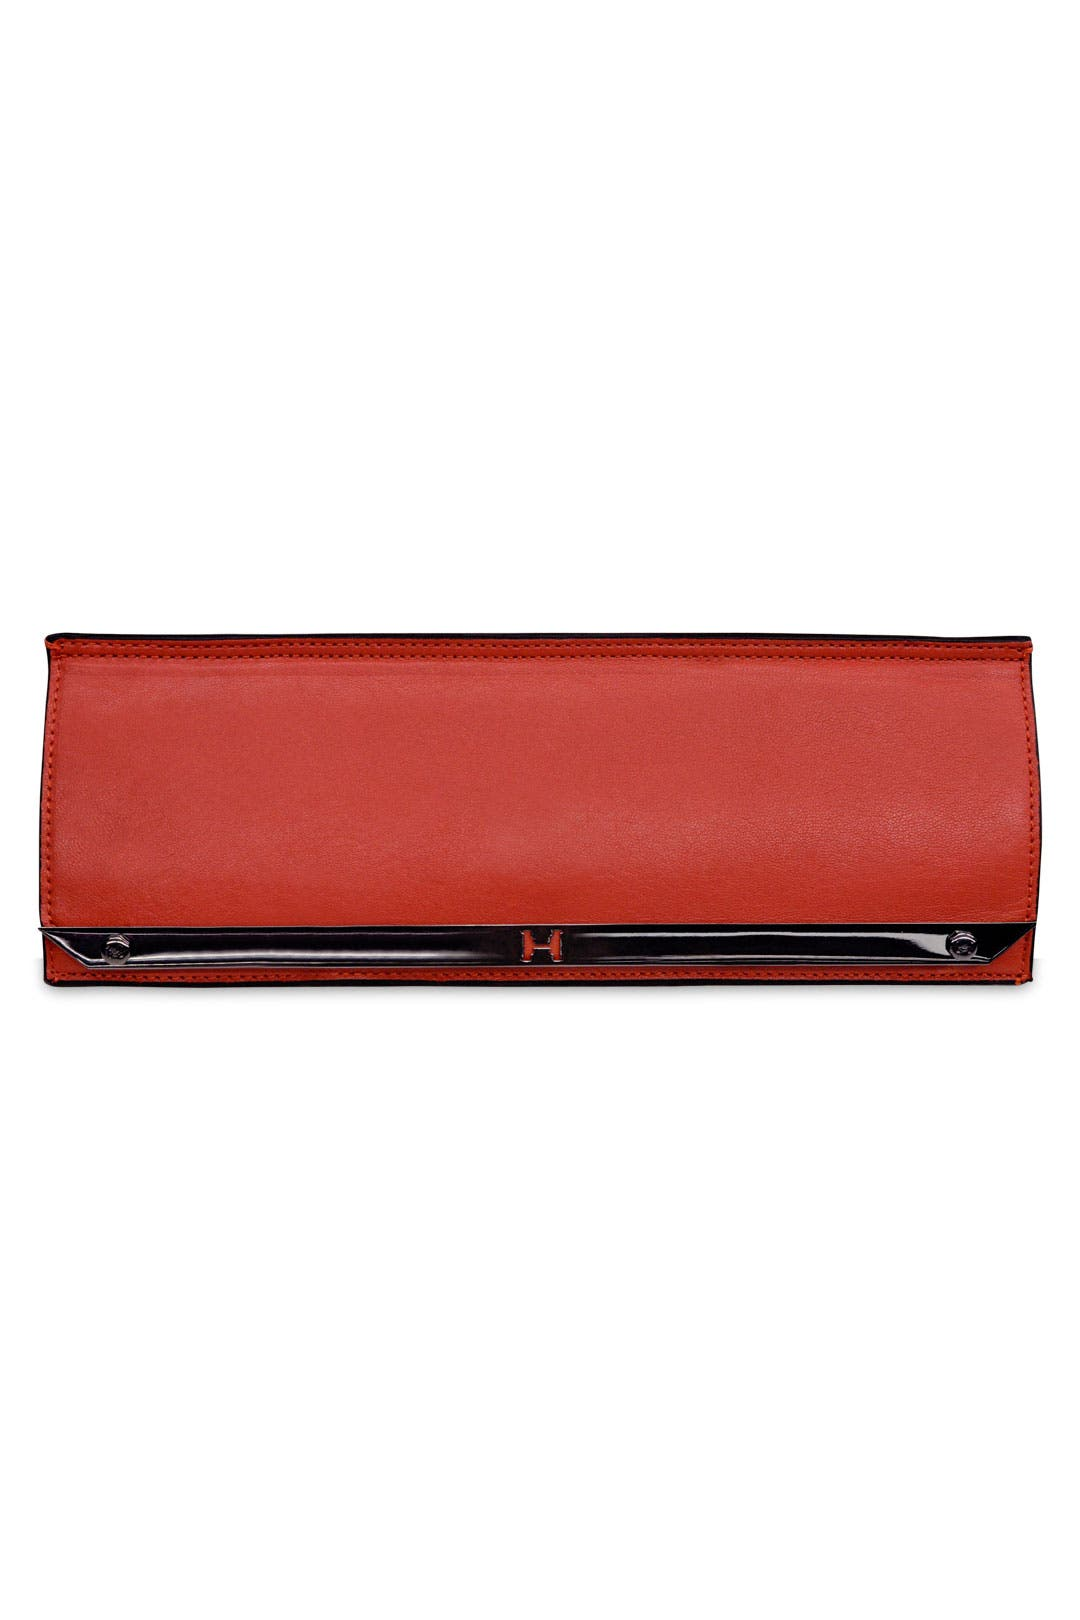 East West Clutch by Halston Heritage Handbags